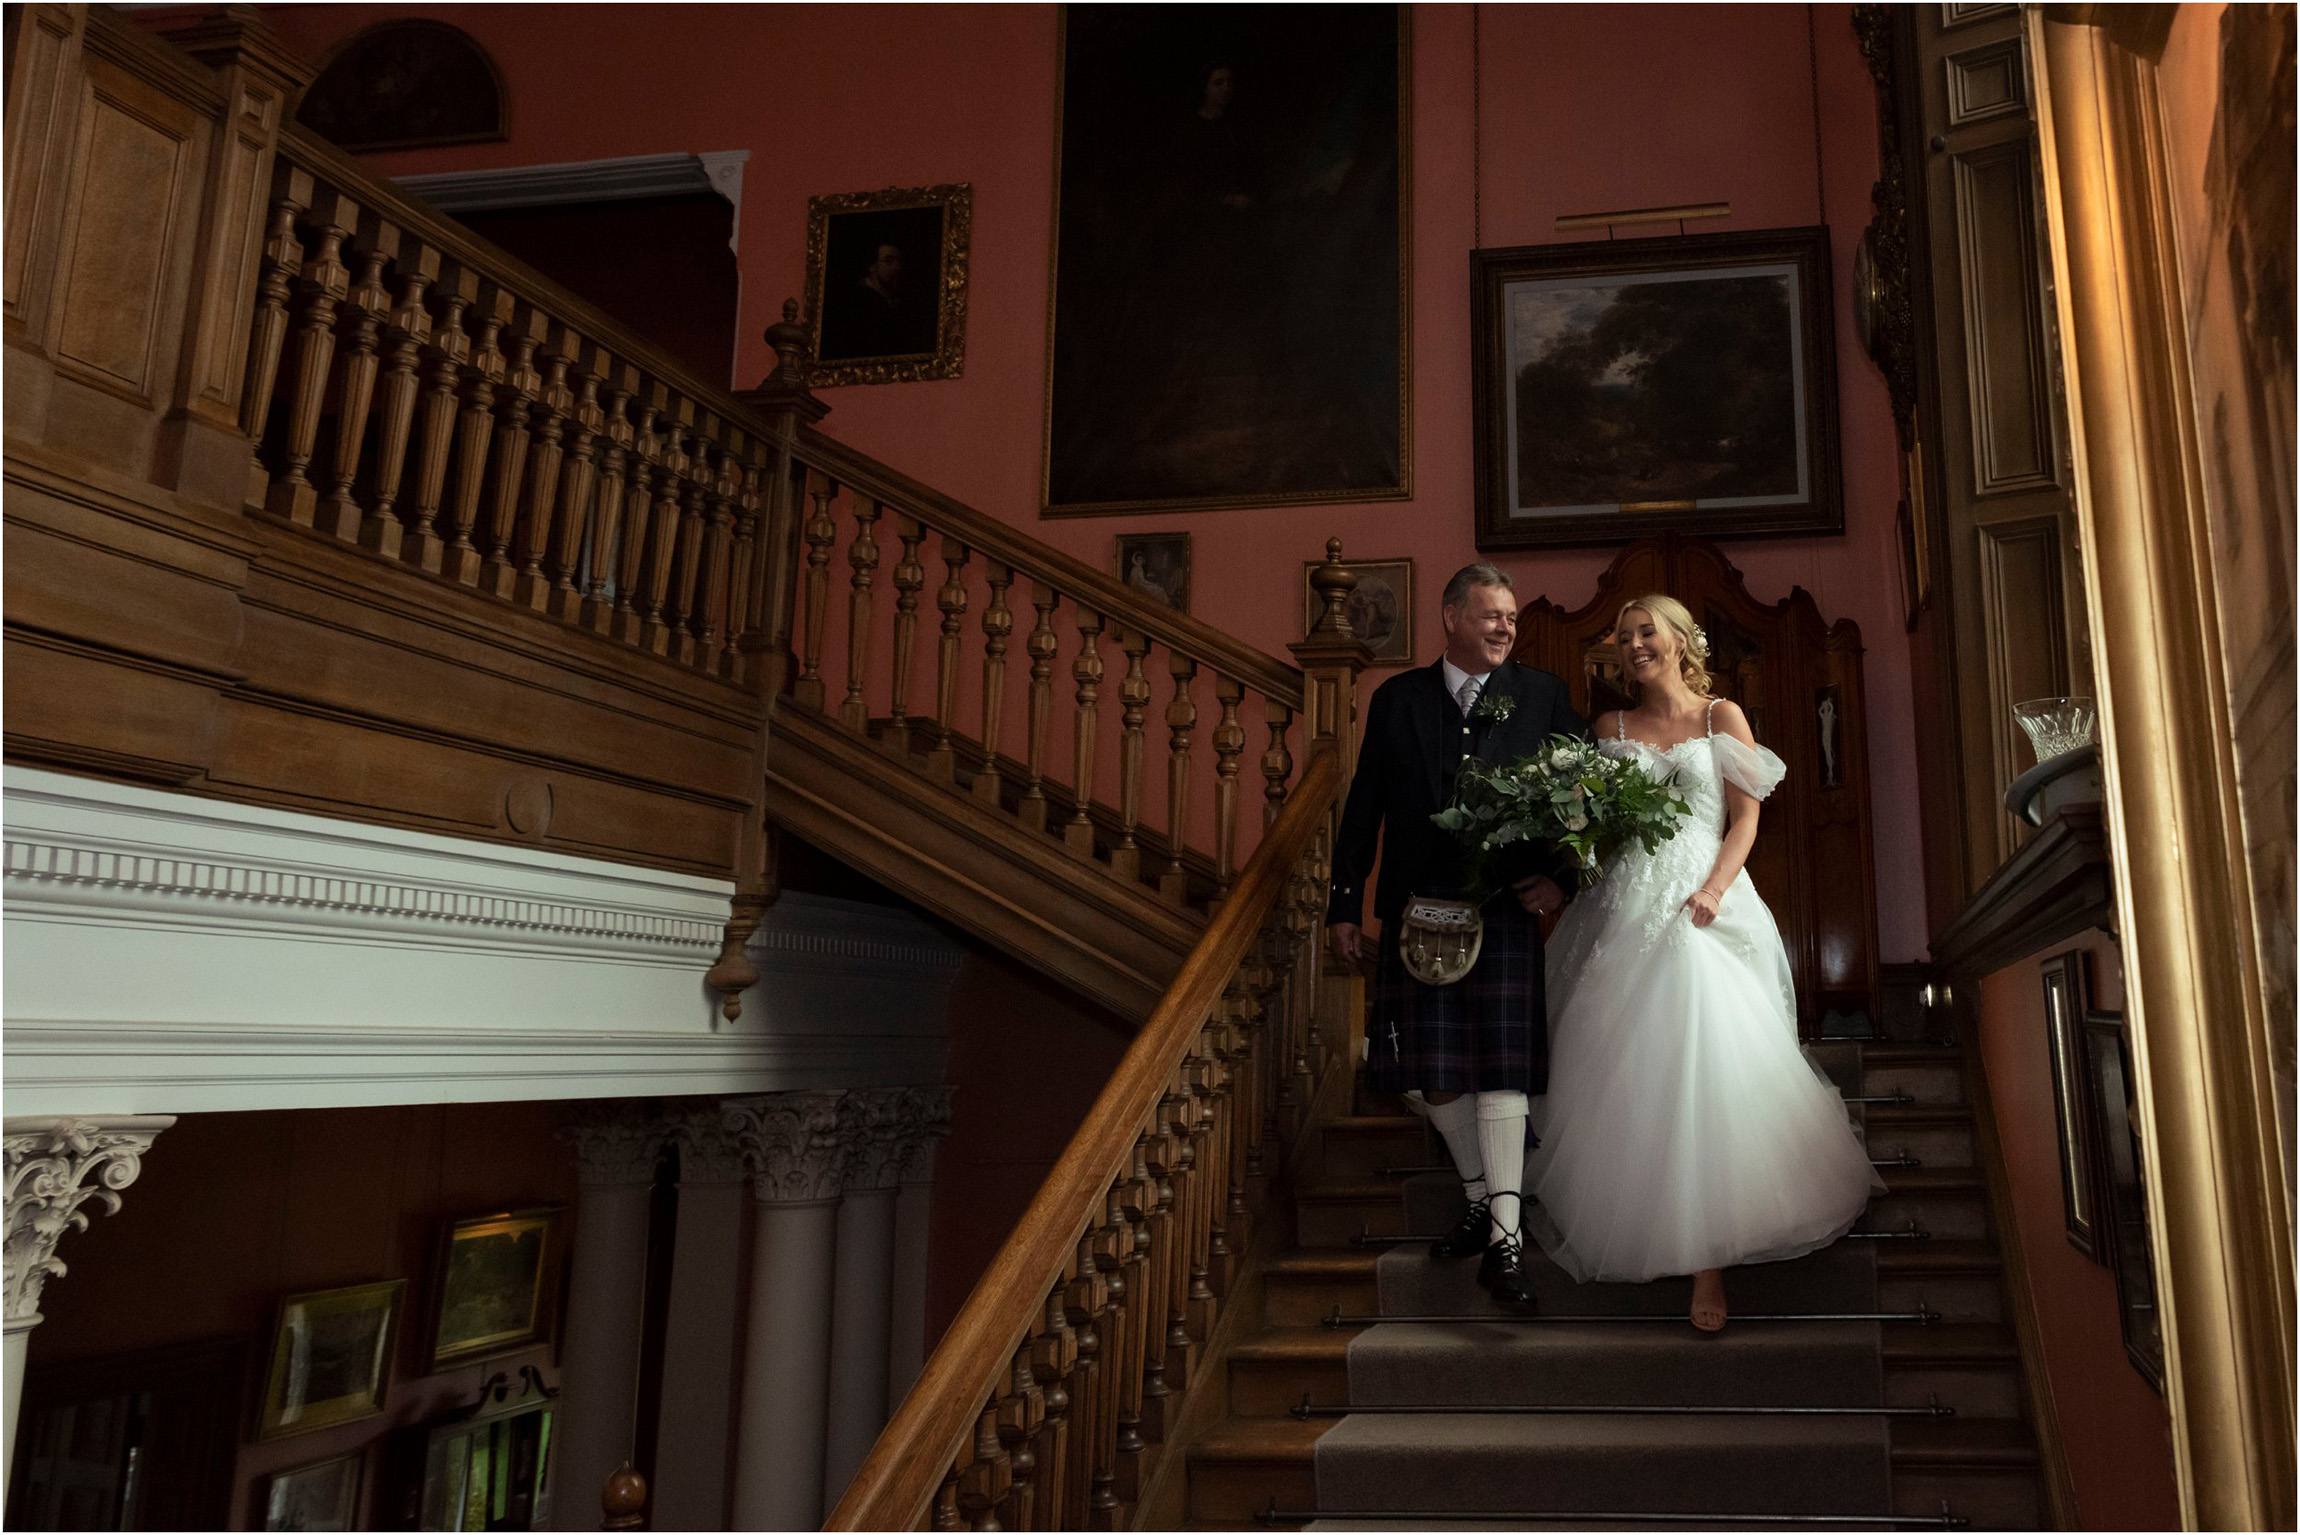 ©FianderFoto_Scotland Wedding Photographer_Errol Park Estate_Janine_Karl_058.jpg